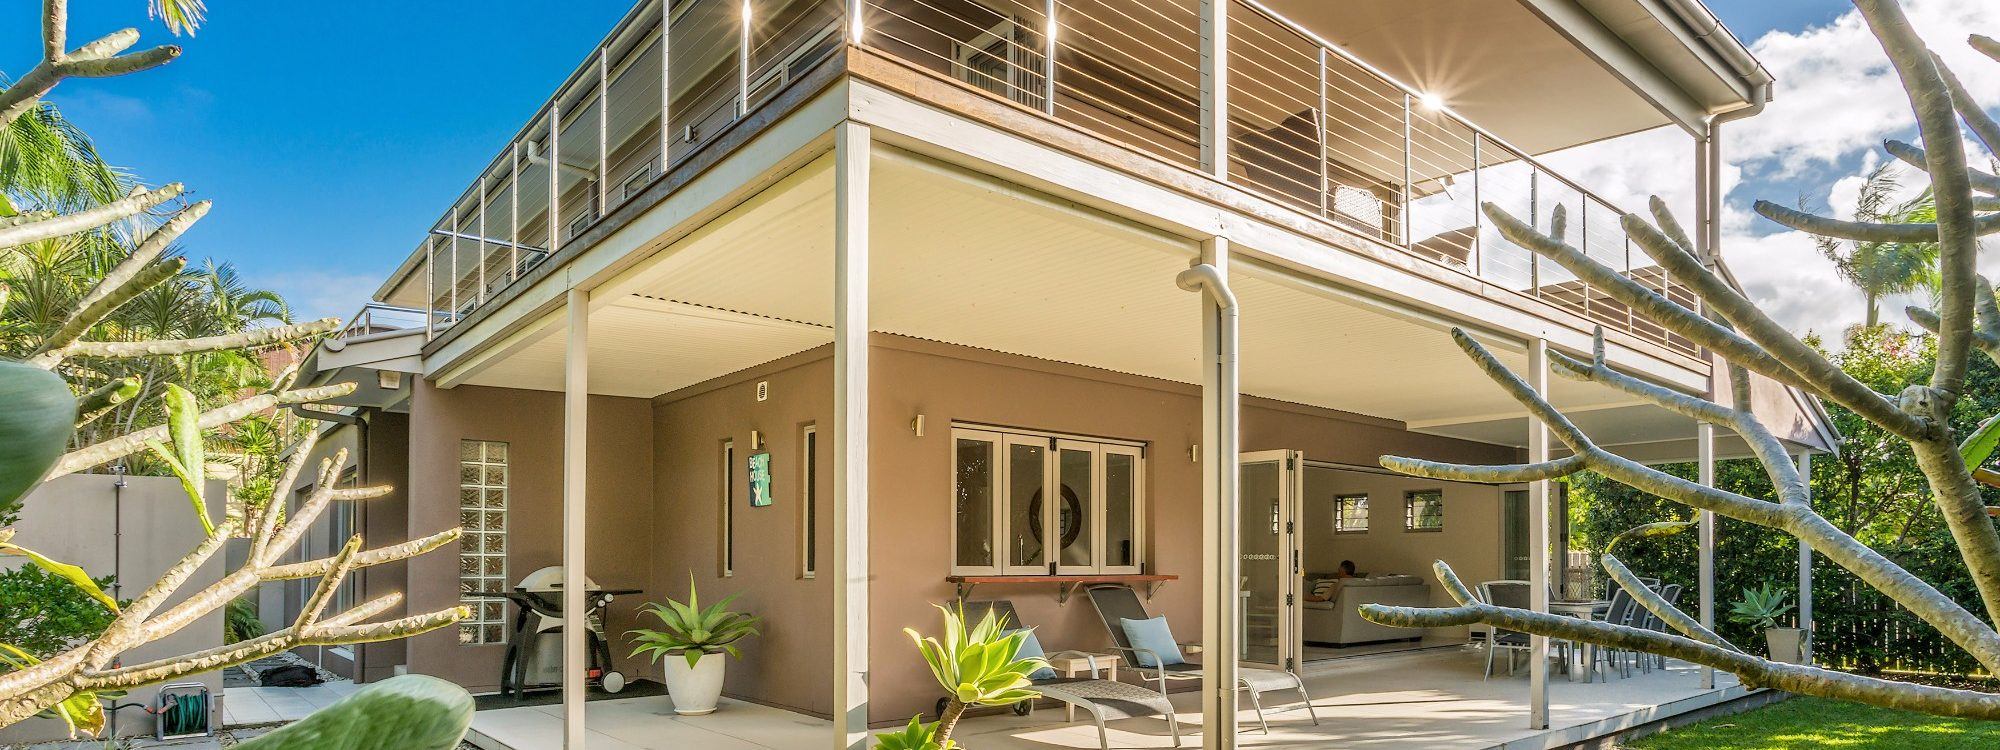 Byron Beach Style - Exterior Back View